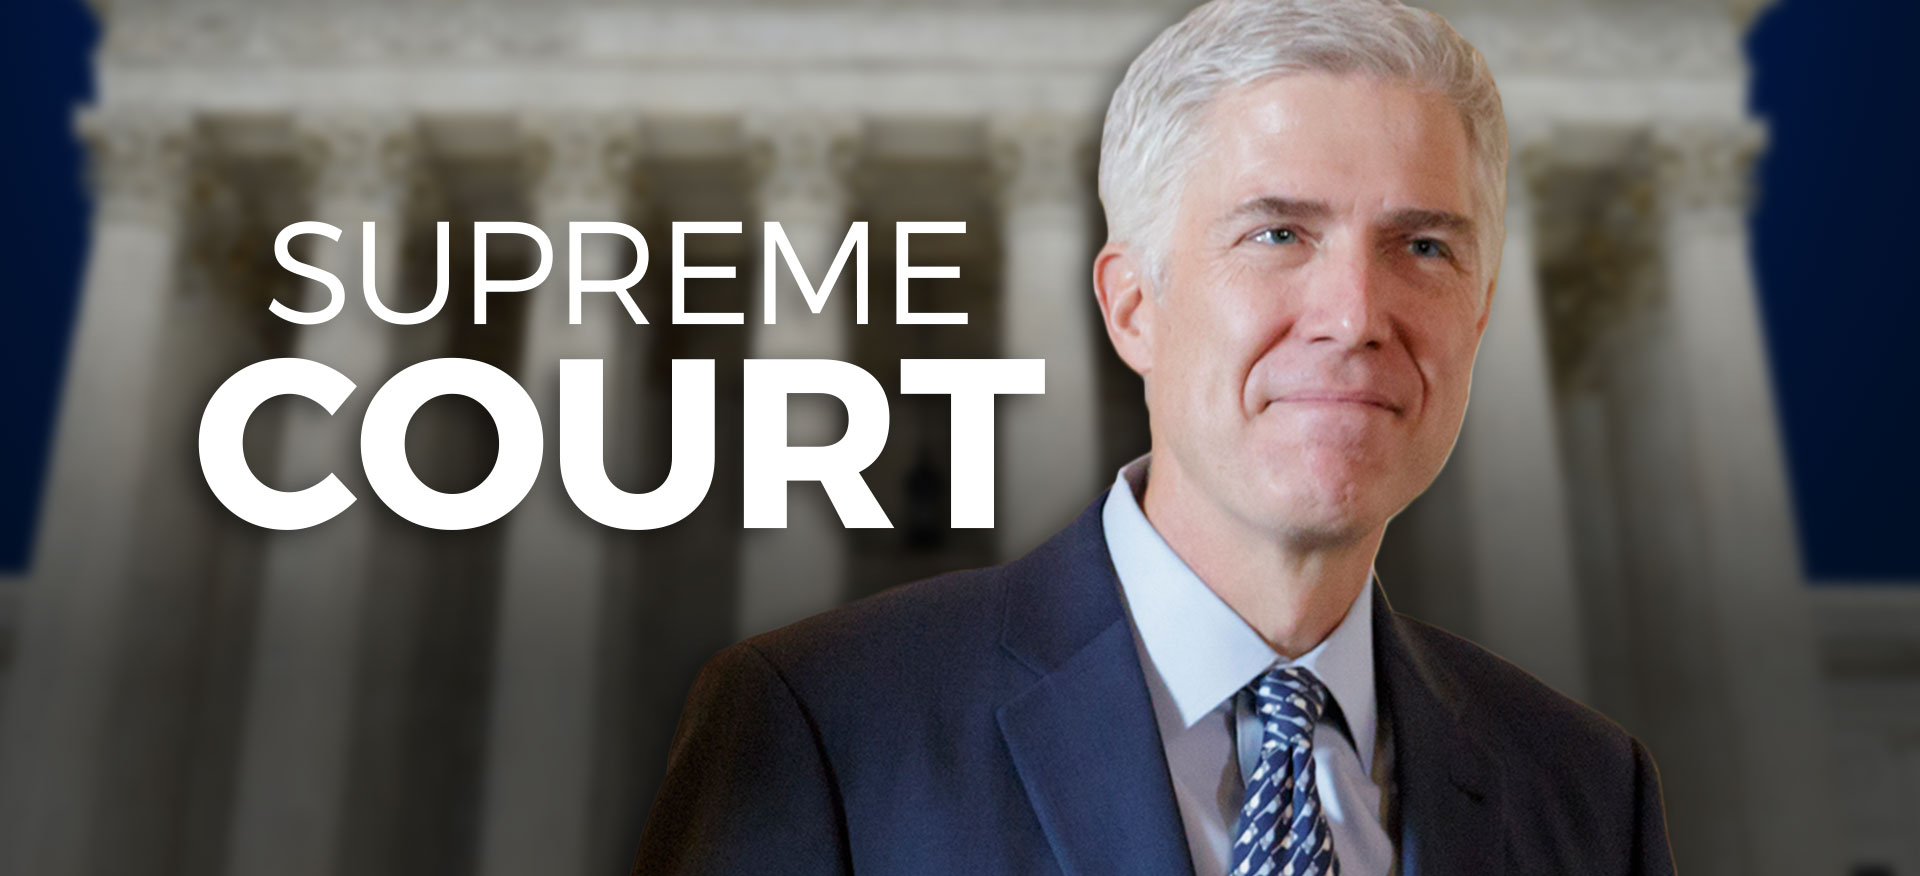 Neil Gorsuch U.S. Supreme Court